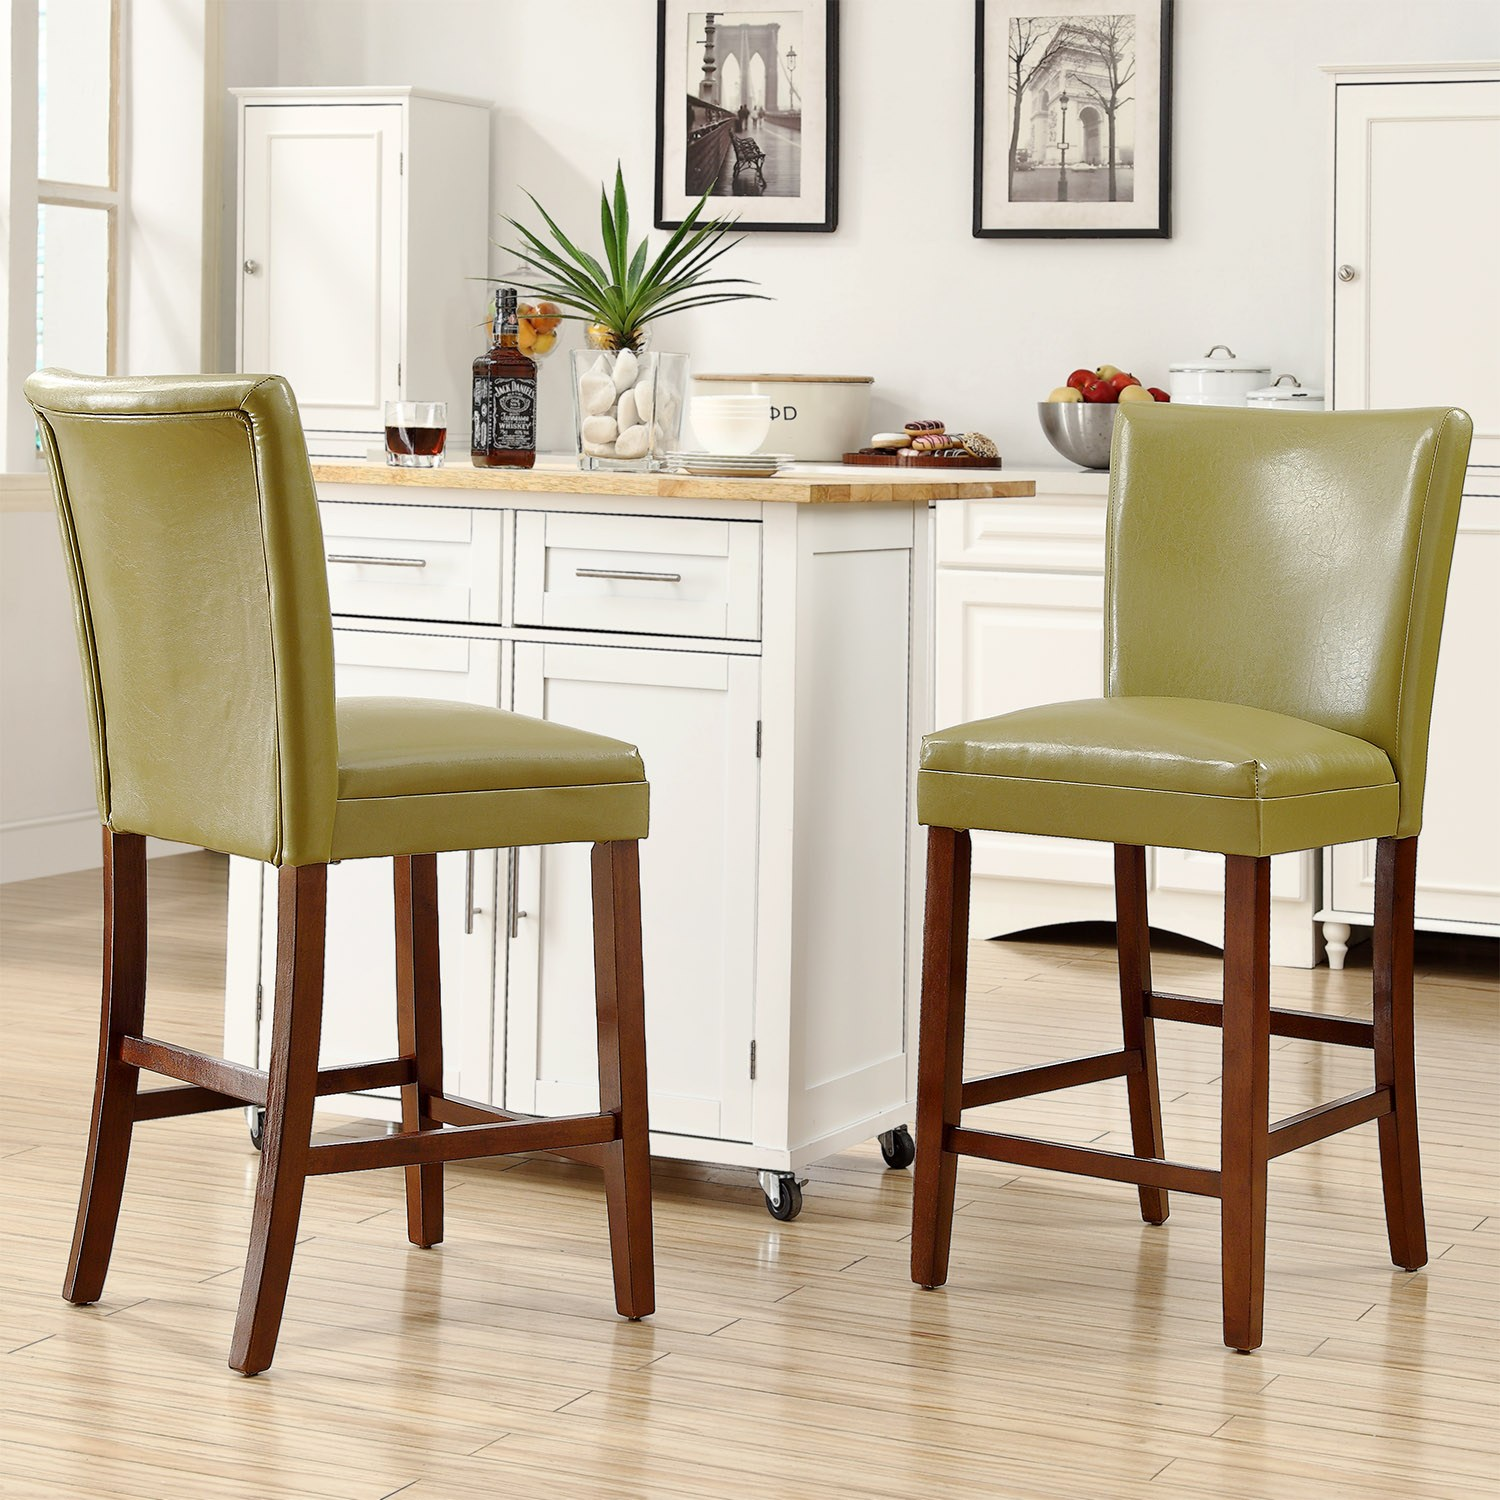 Overstock Bar Stools Counter Height